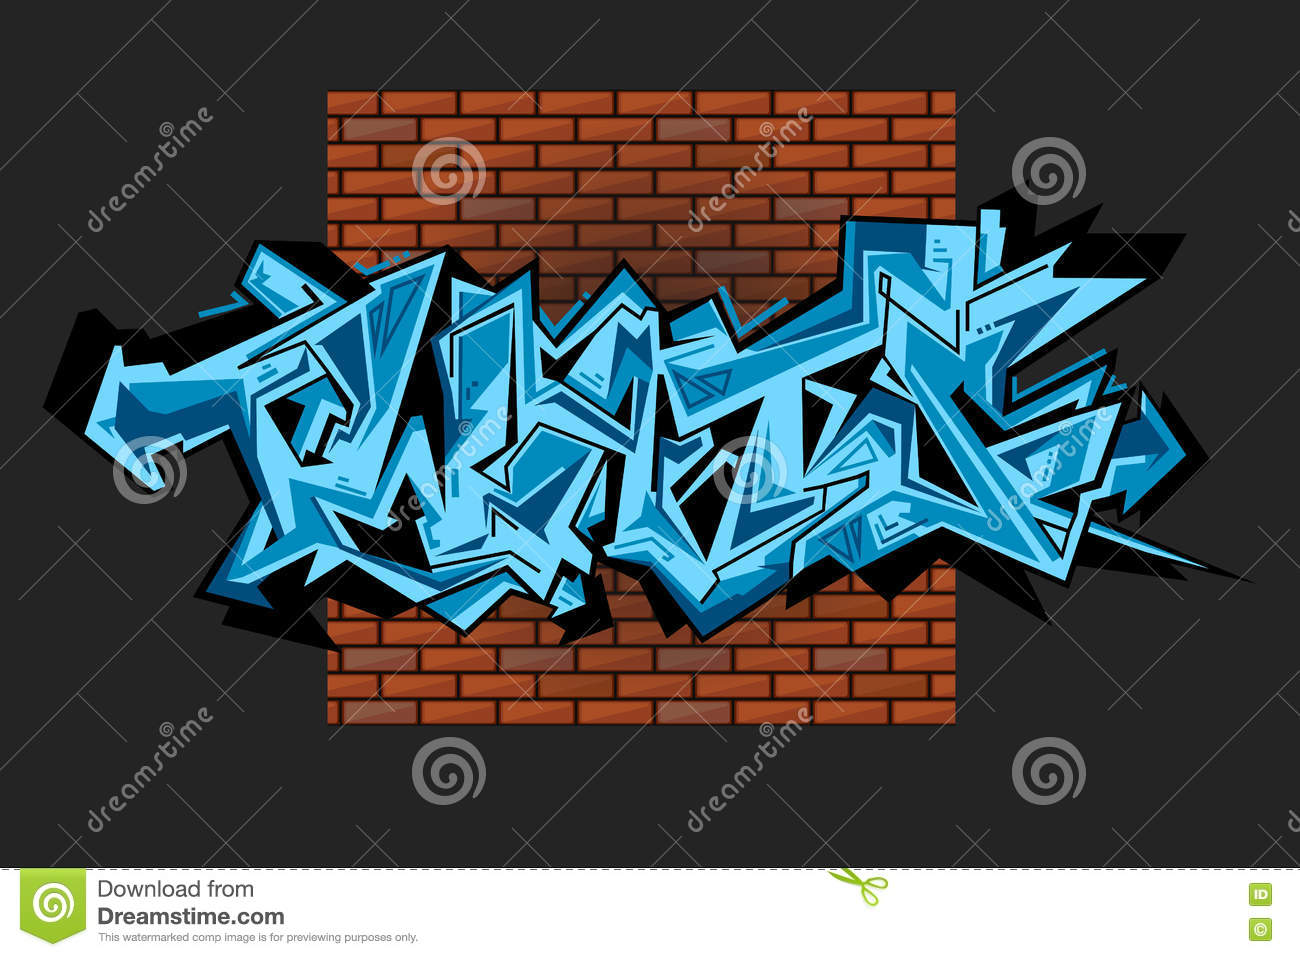 Graffiti Vector Urban Art Stock Vector Image 75269347